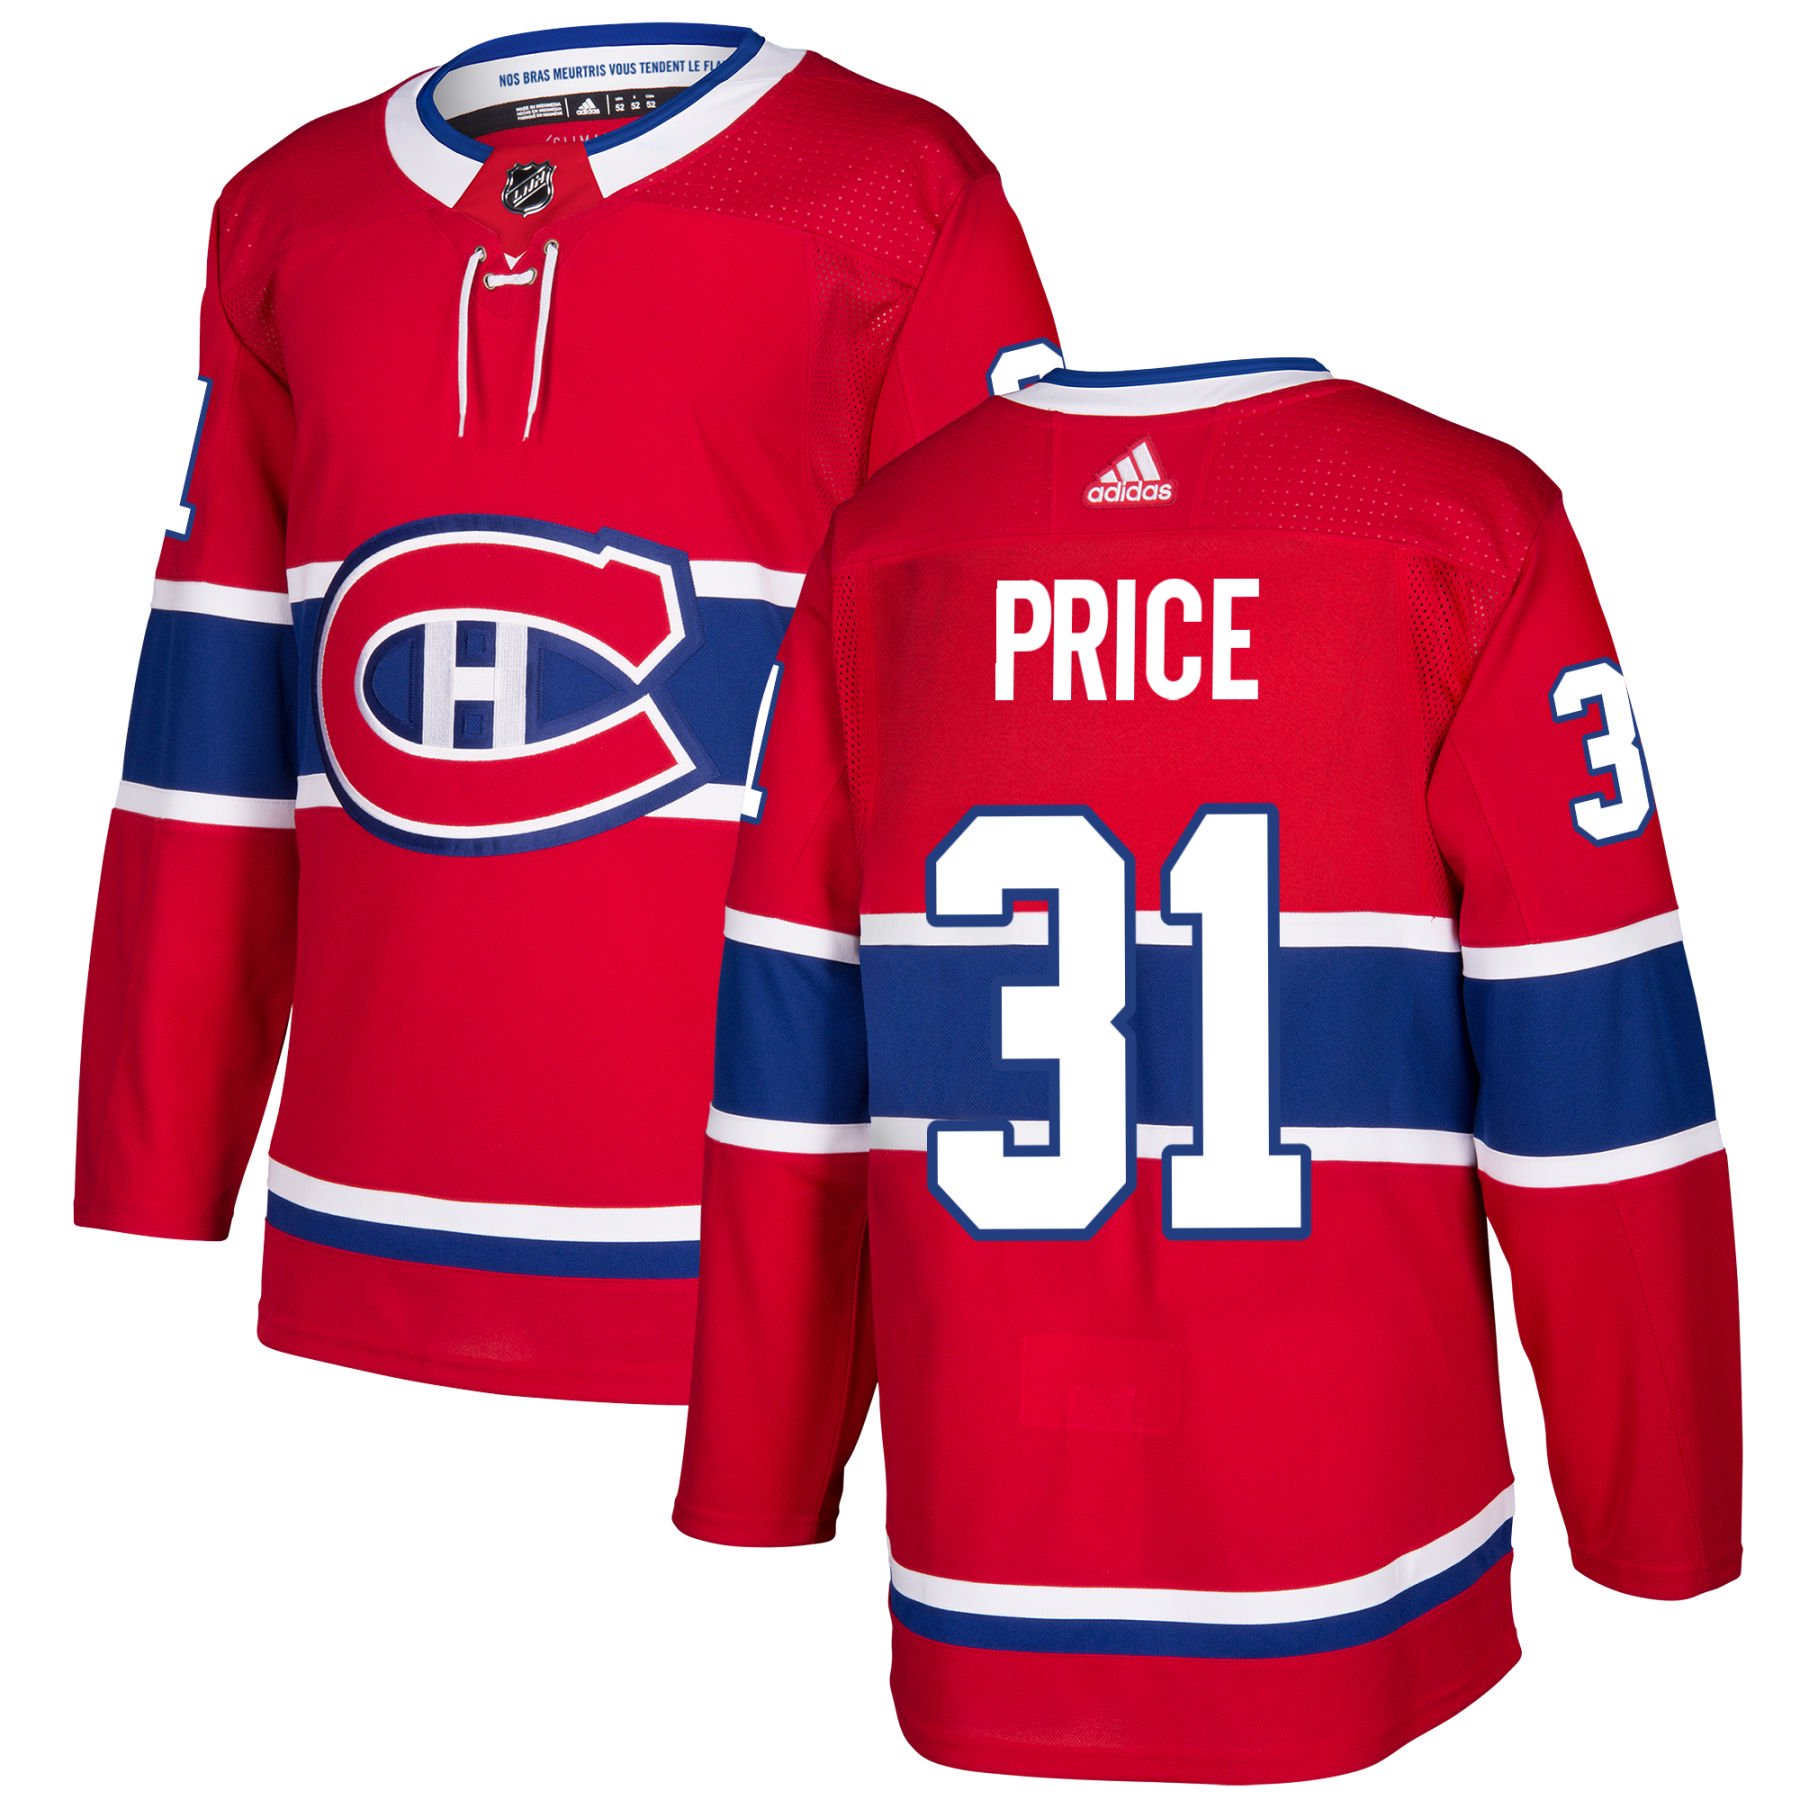 ba9382c51fb Carey Price Montreal Canadiens adidas NHL Authentic Pro Home Jersey - Pro  Stitched